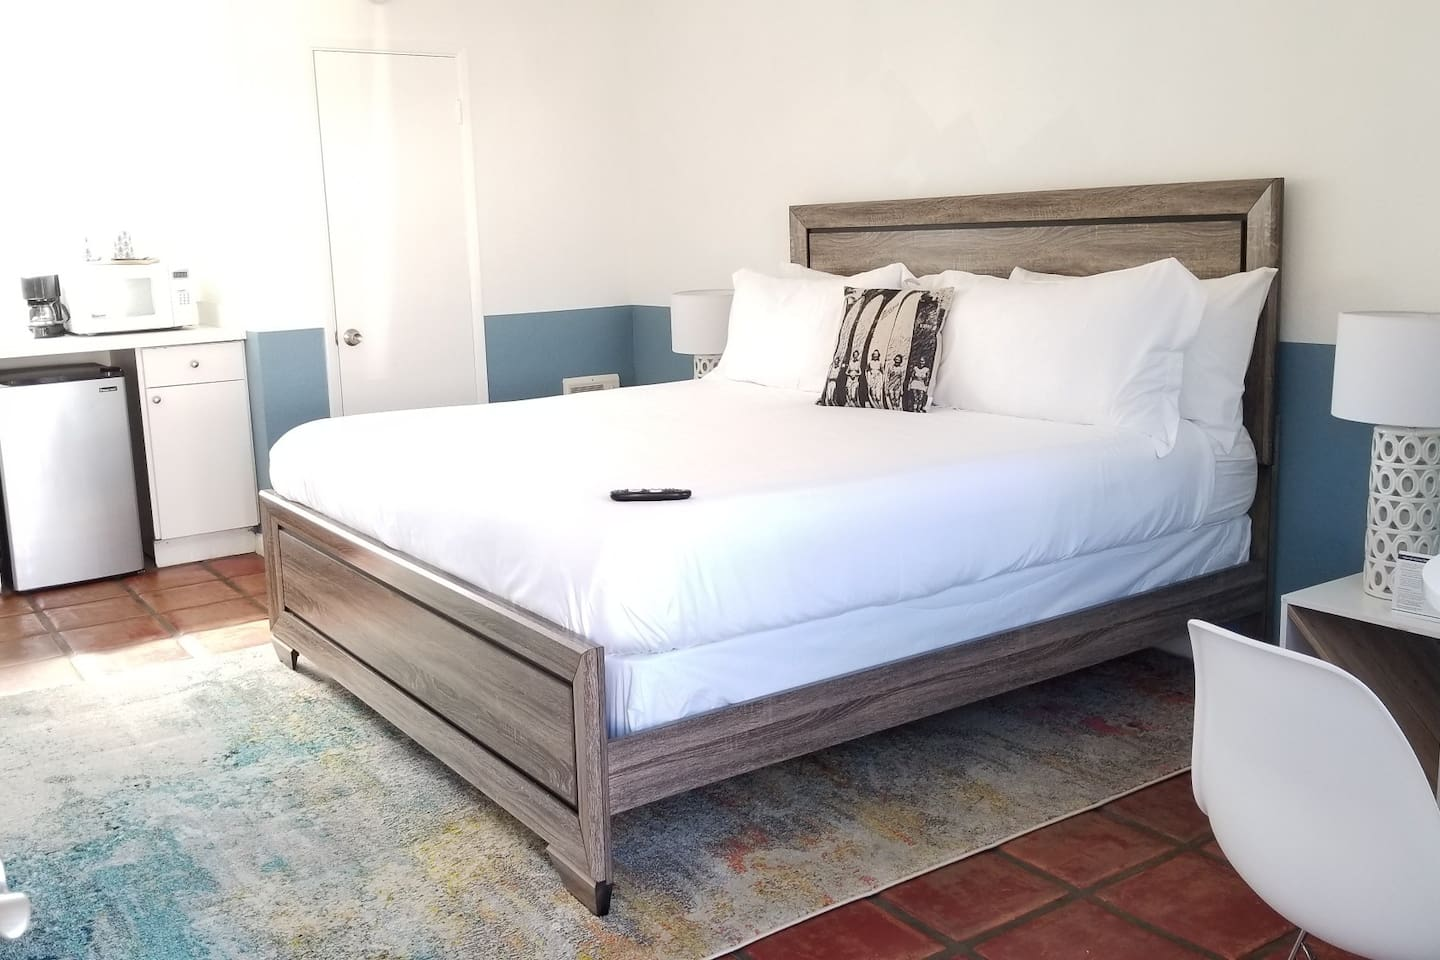 Huge King bed waiting for you!